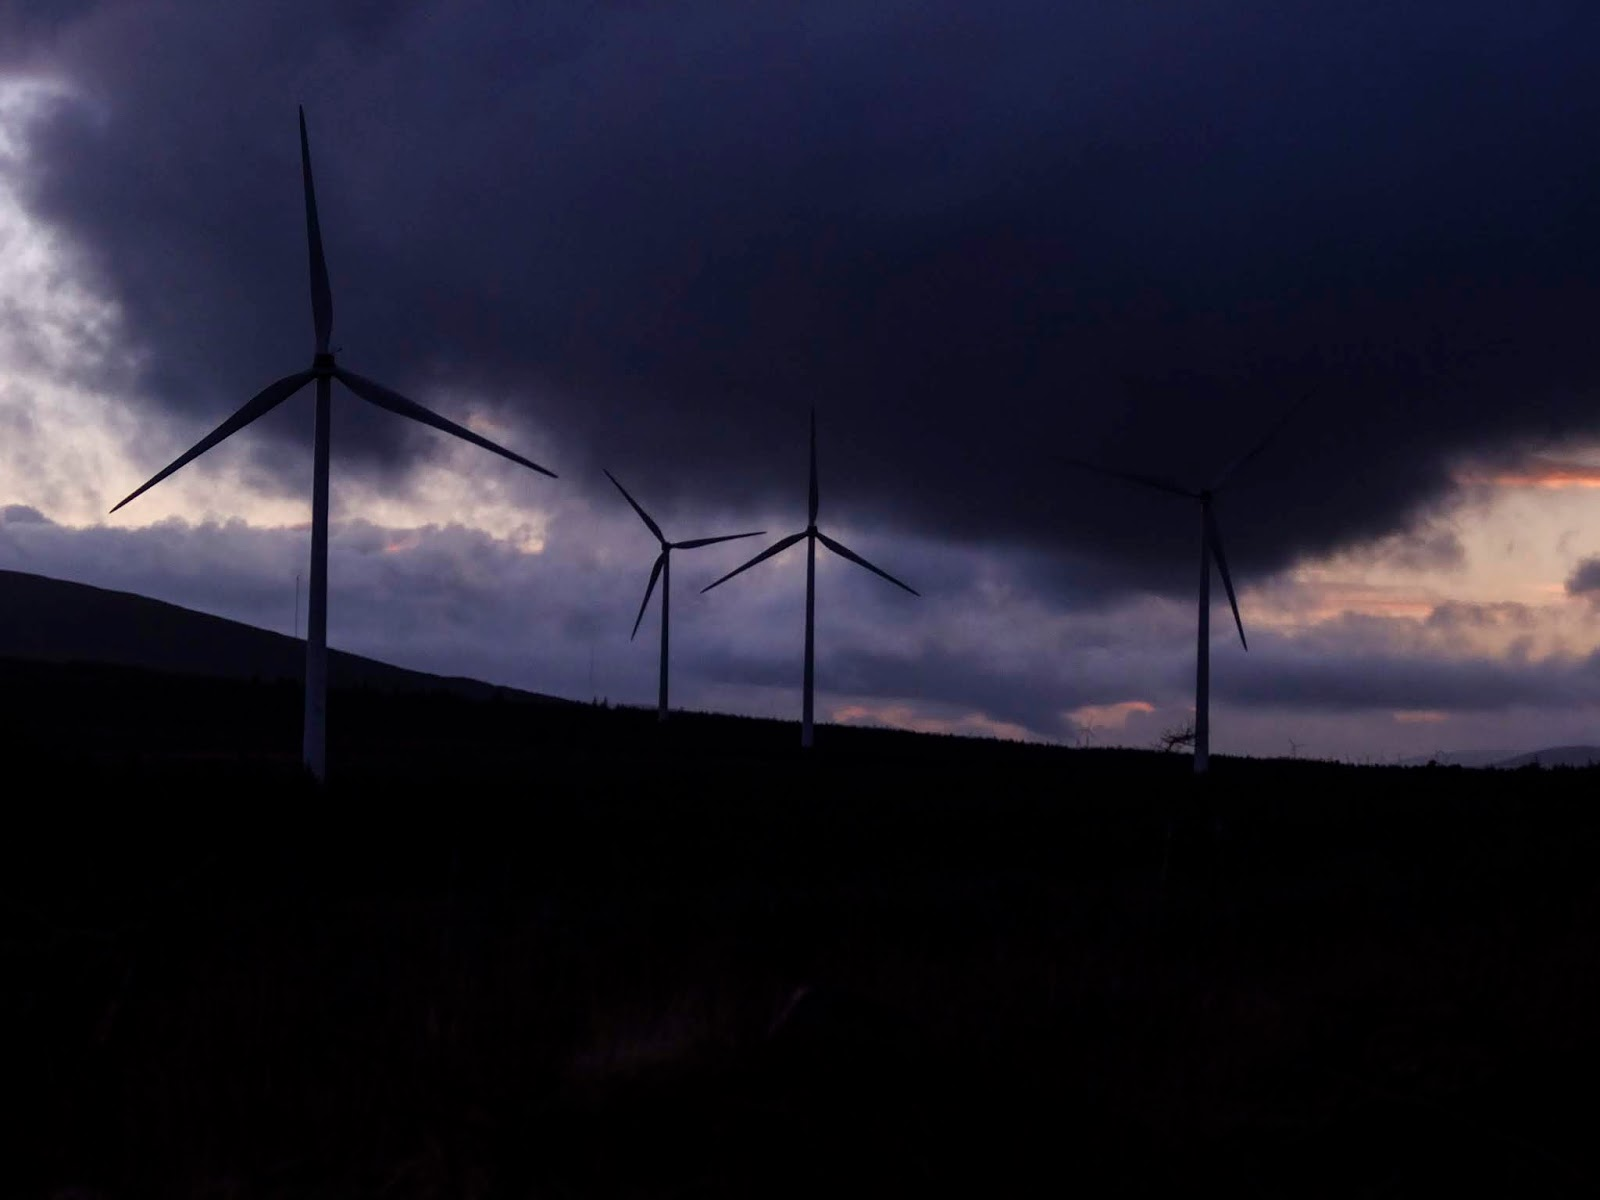 Dark sunset clouds behind windmills in the mountains.